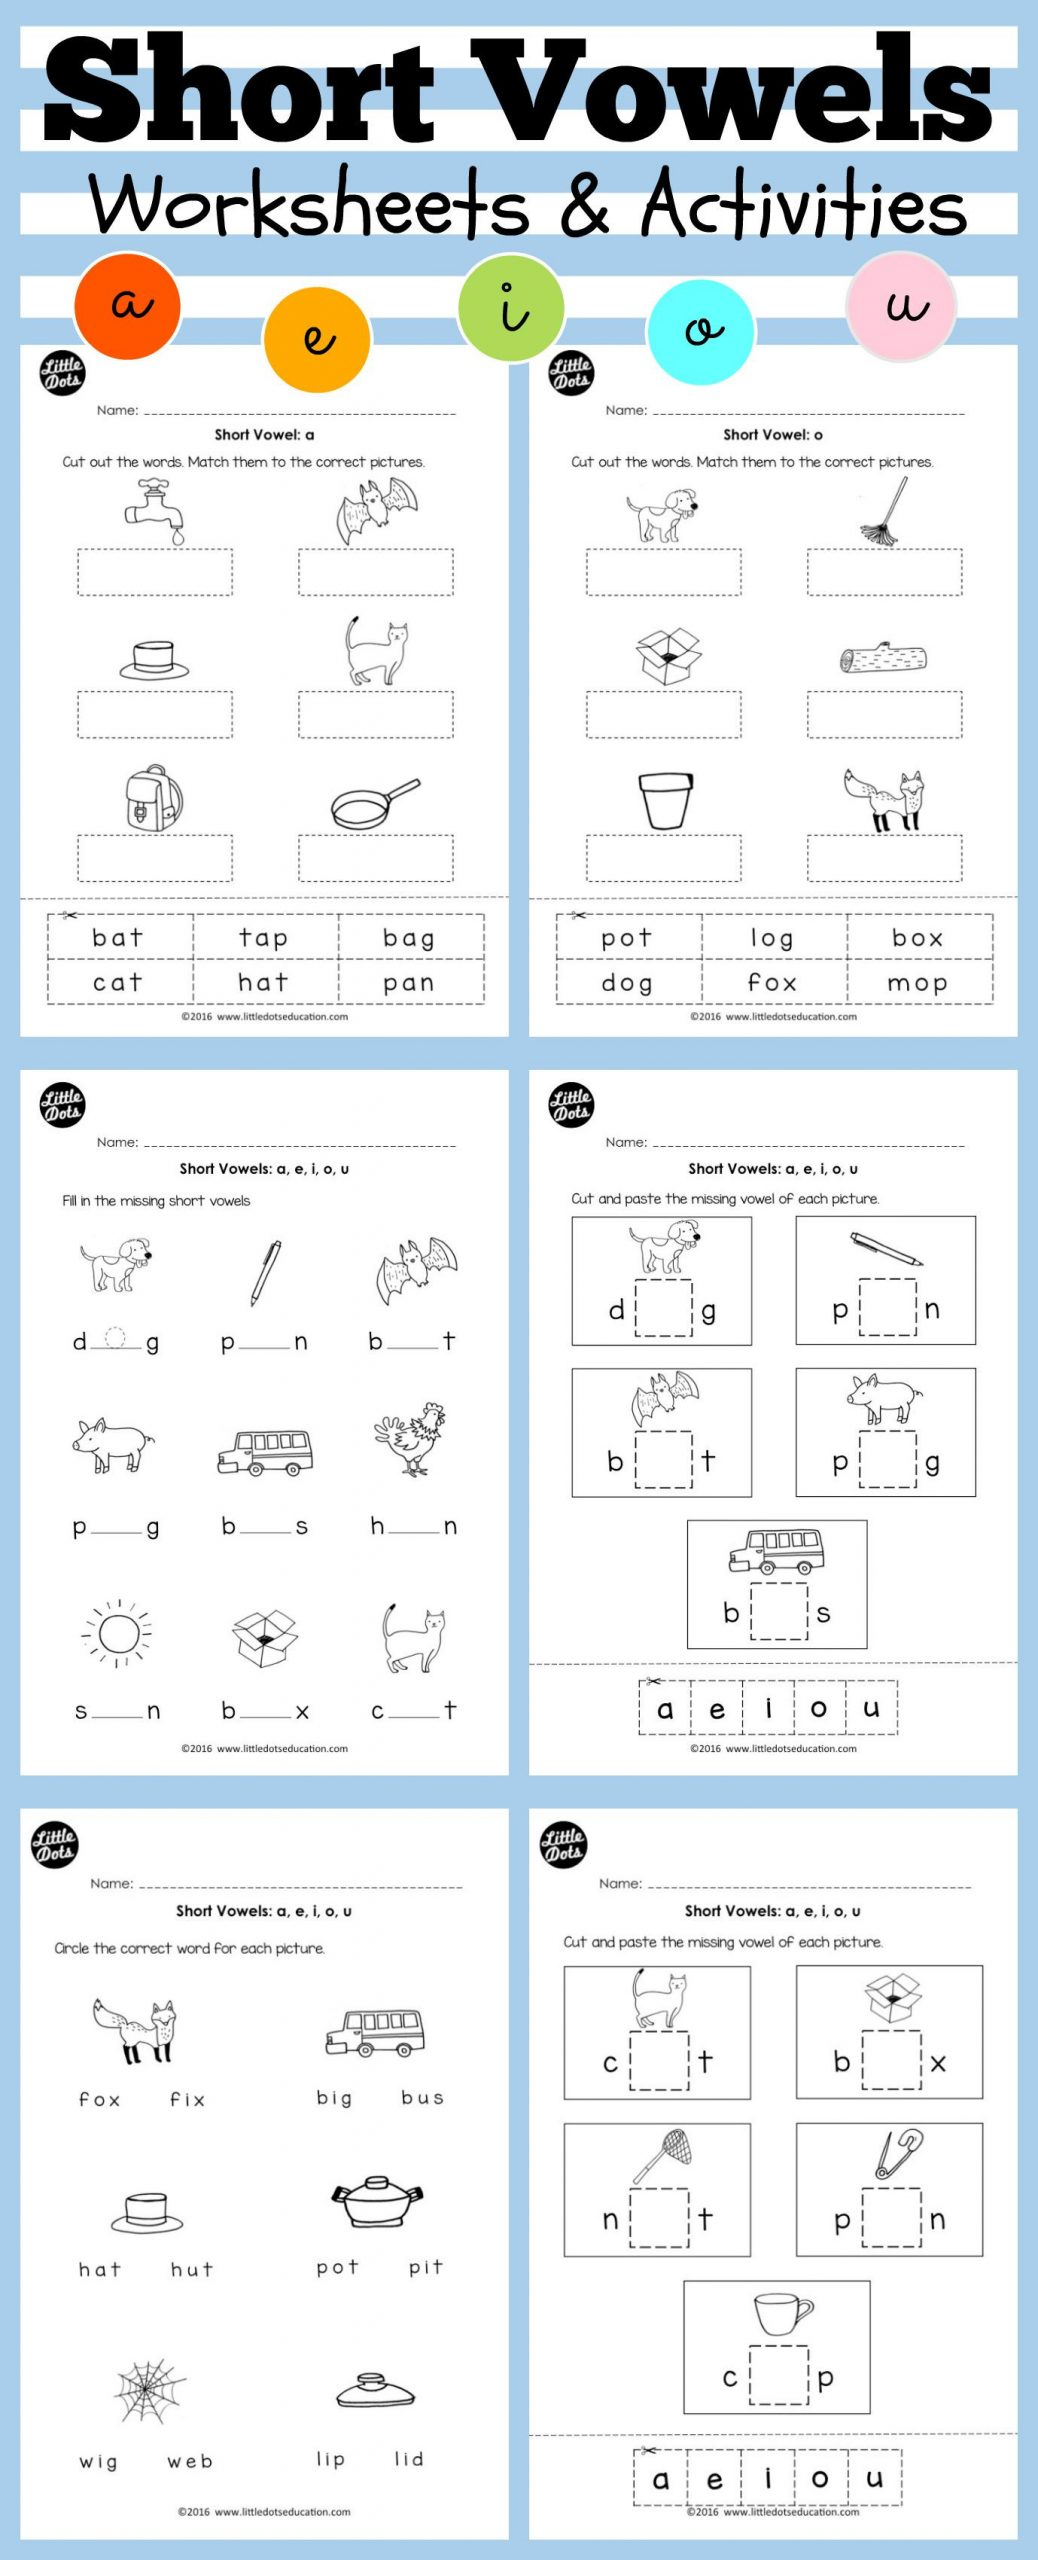 Short Vowel Worksheets 2nd Grade Short Vowels Middle sounds Worksheets and Activities